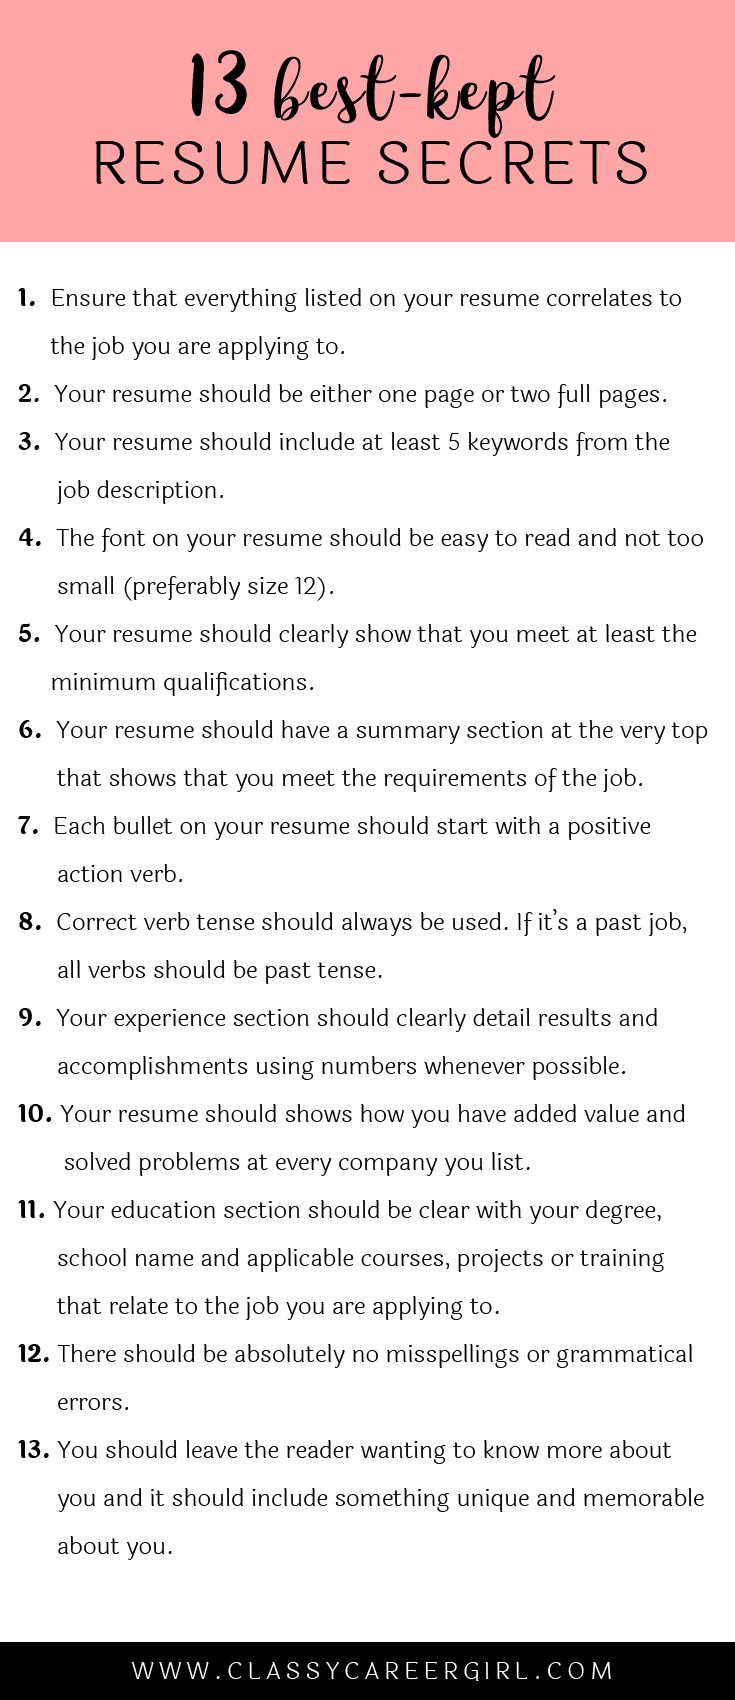 Opposenewapstandardsus  Winsome  Ideas About Resume On Pinterest  Cv Format Resume Cv And  With Marvelous Some Hiring Managers Will Toss Your Resume Out If You Dont Know These  With Amazing Resume Critique Also Objectives On A Resume In Addition Basic Resume Templates And Emt Resume As Well As Production Assistant Resume Additionally Purdue Owl Resume From Pinterestcom With Opposenewapstandardsus  Marvelous  Ideas About Resume On Pinterest  Cv Format Resume Cv And  With Amazing Some Hiring Managers Will Toss Your Resume Out If You Dont Know These  And Winsome Resume Critique Also Objectives On A Resume In Addition Basic Resume Templates From Pinterestcom